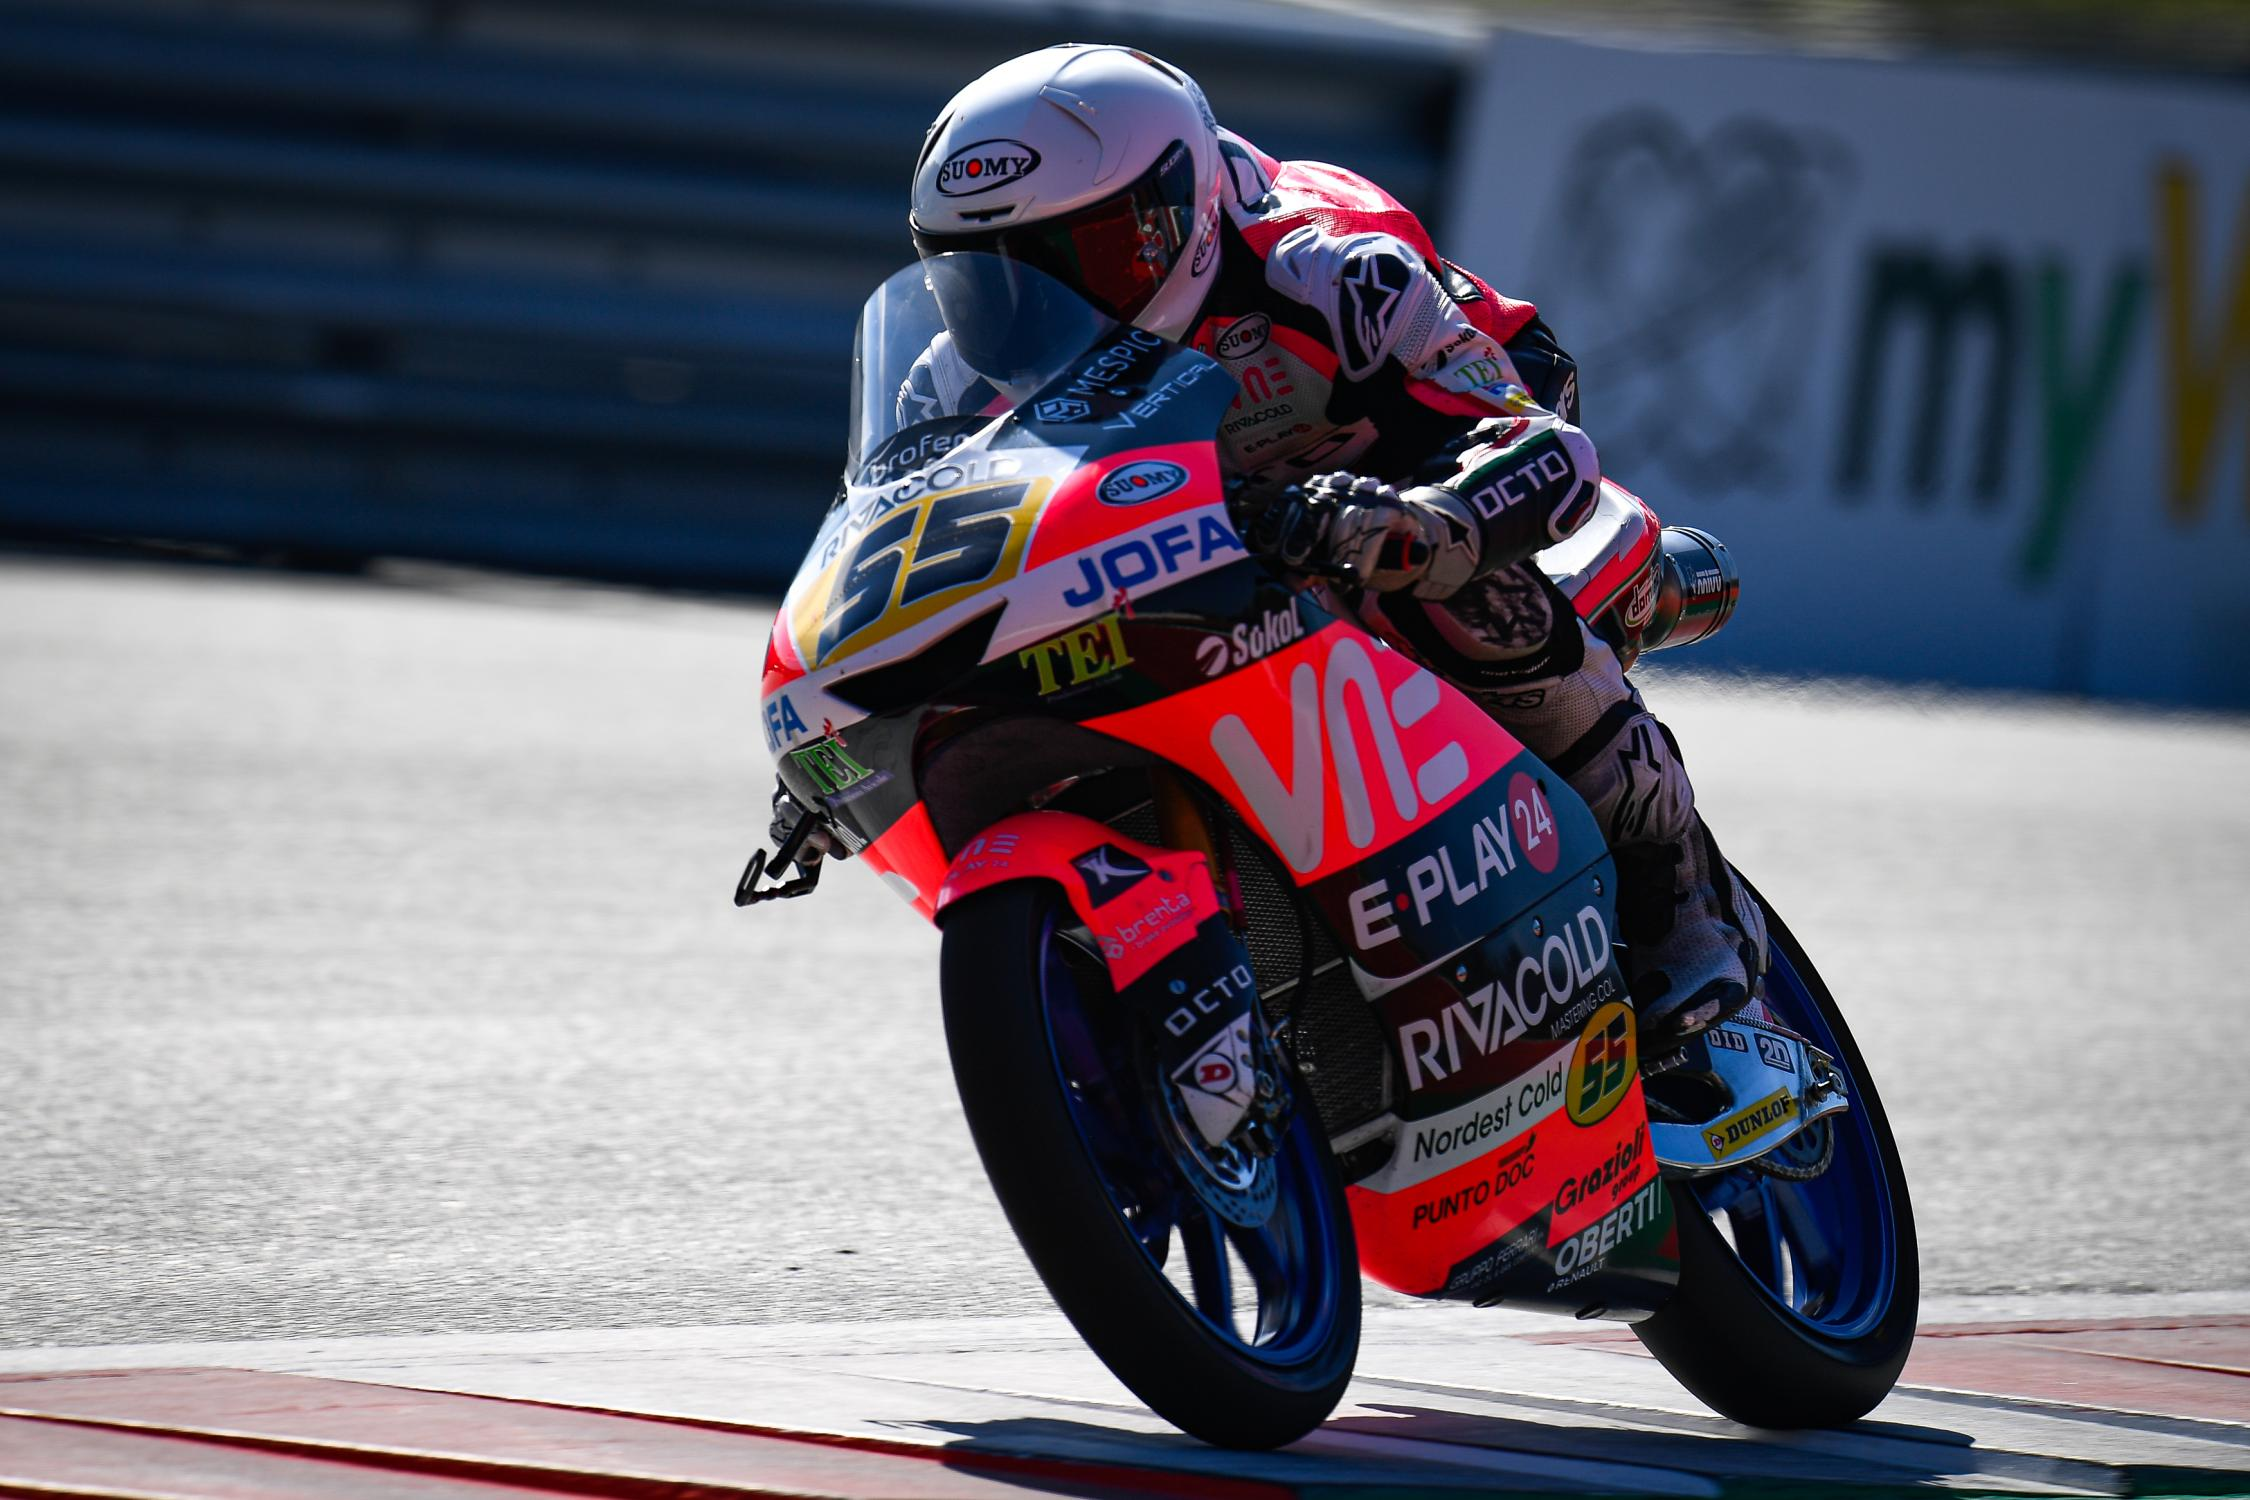 55-romano-fenati-ita_dsc5291.gallery_full_top_fullscreen